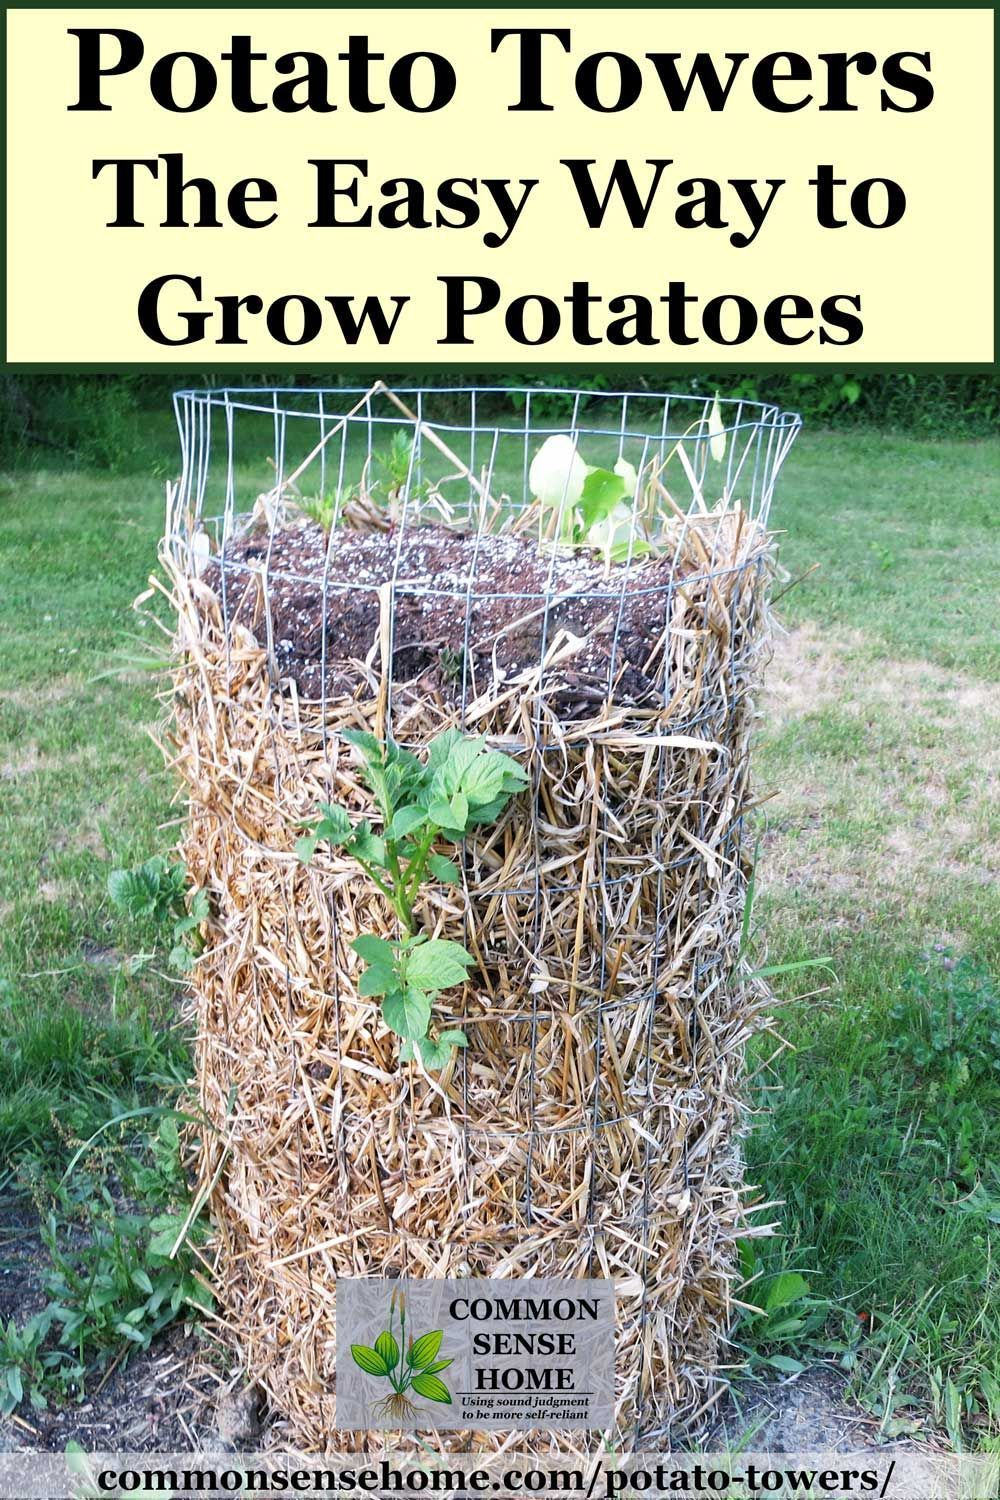 Potato Towers - Which Varieties to Grow and Tips for Success